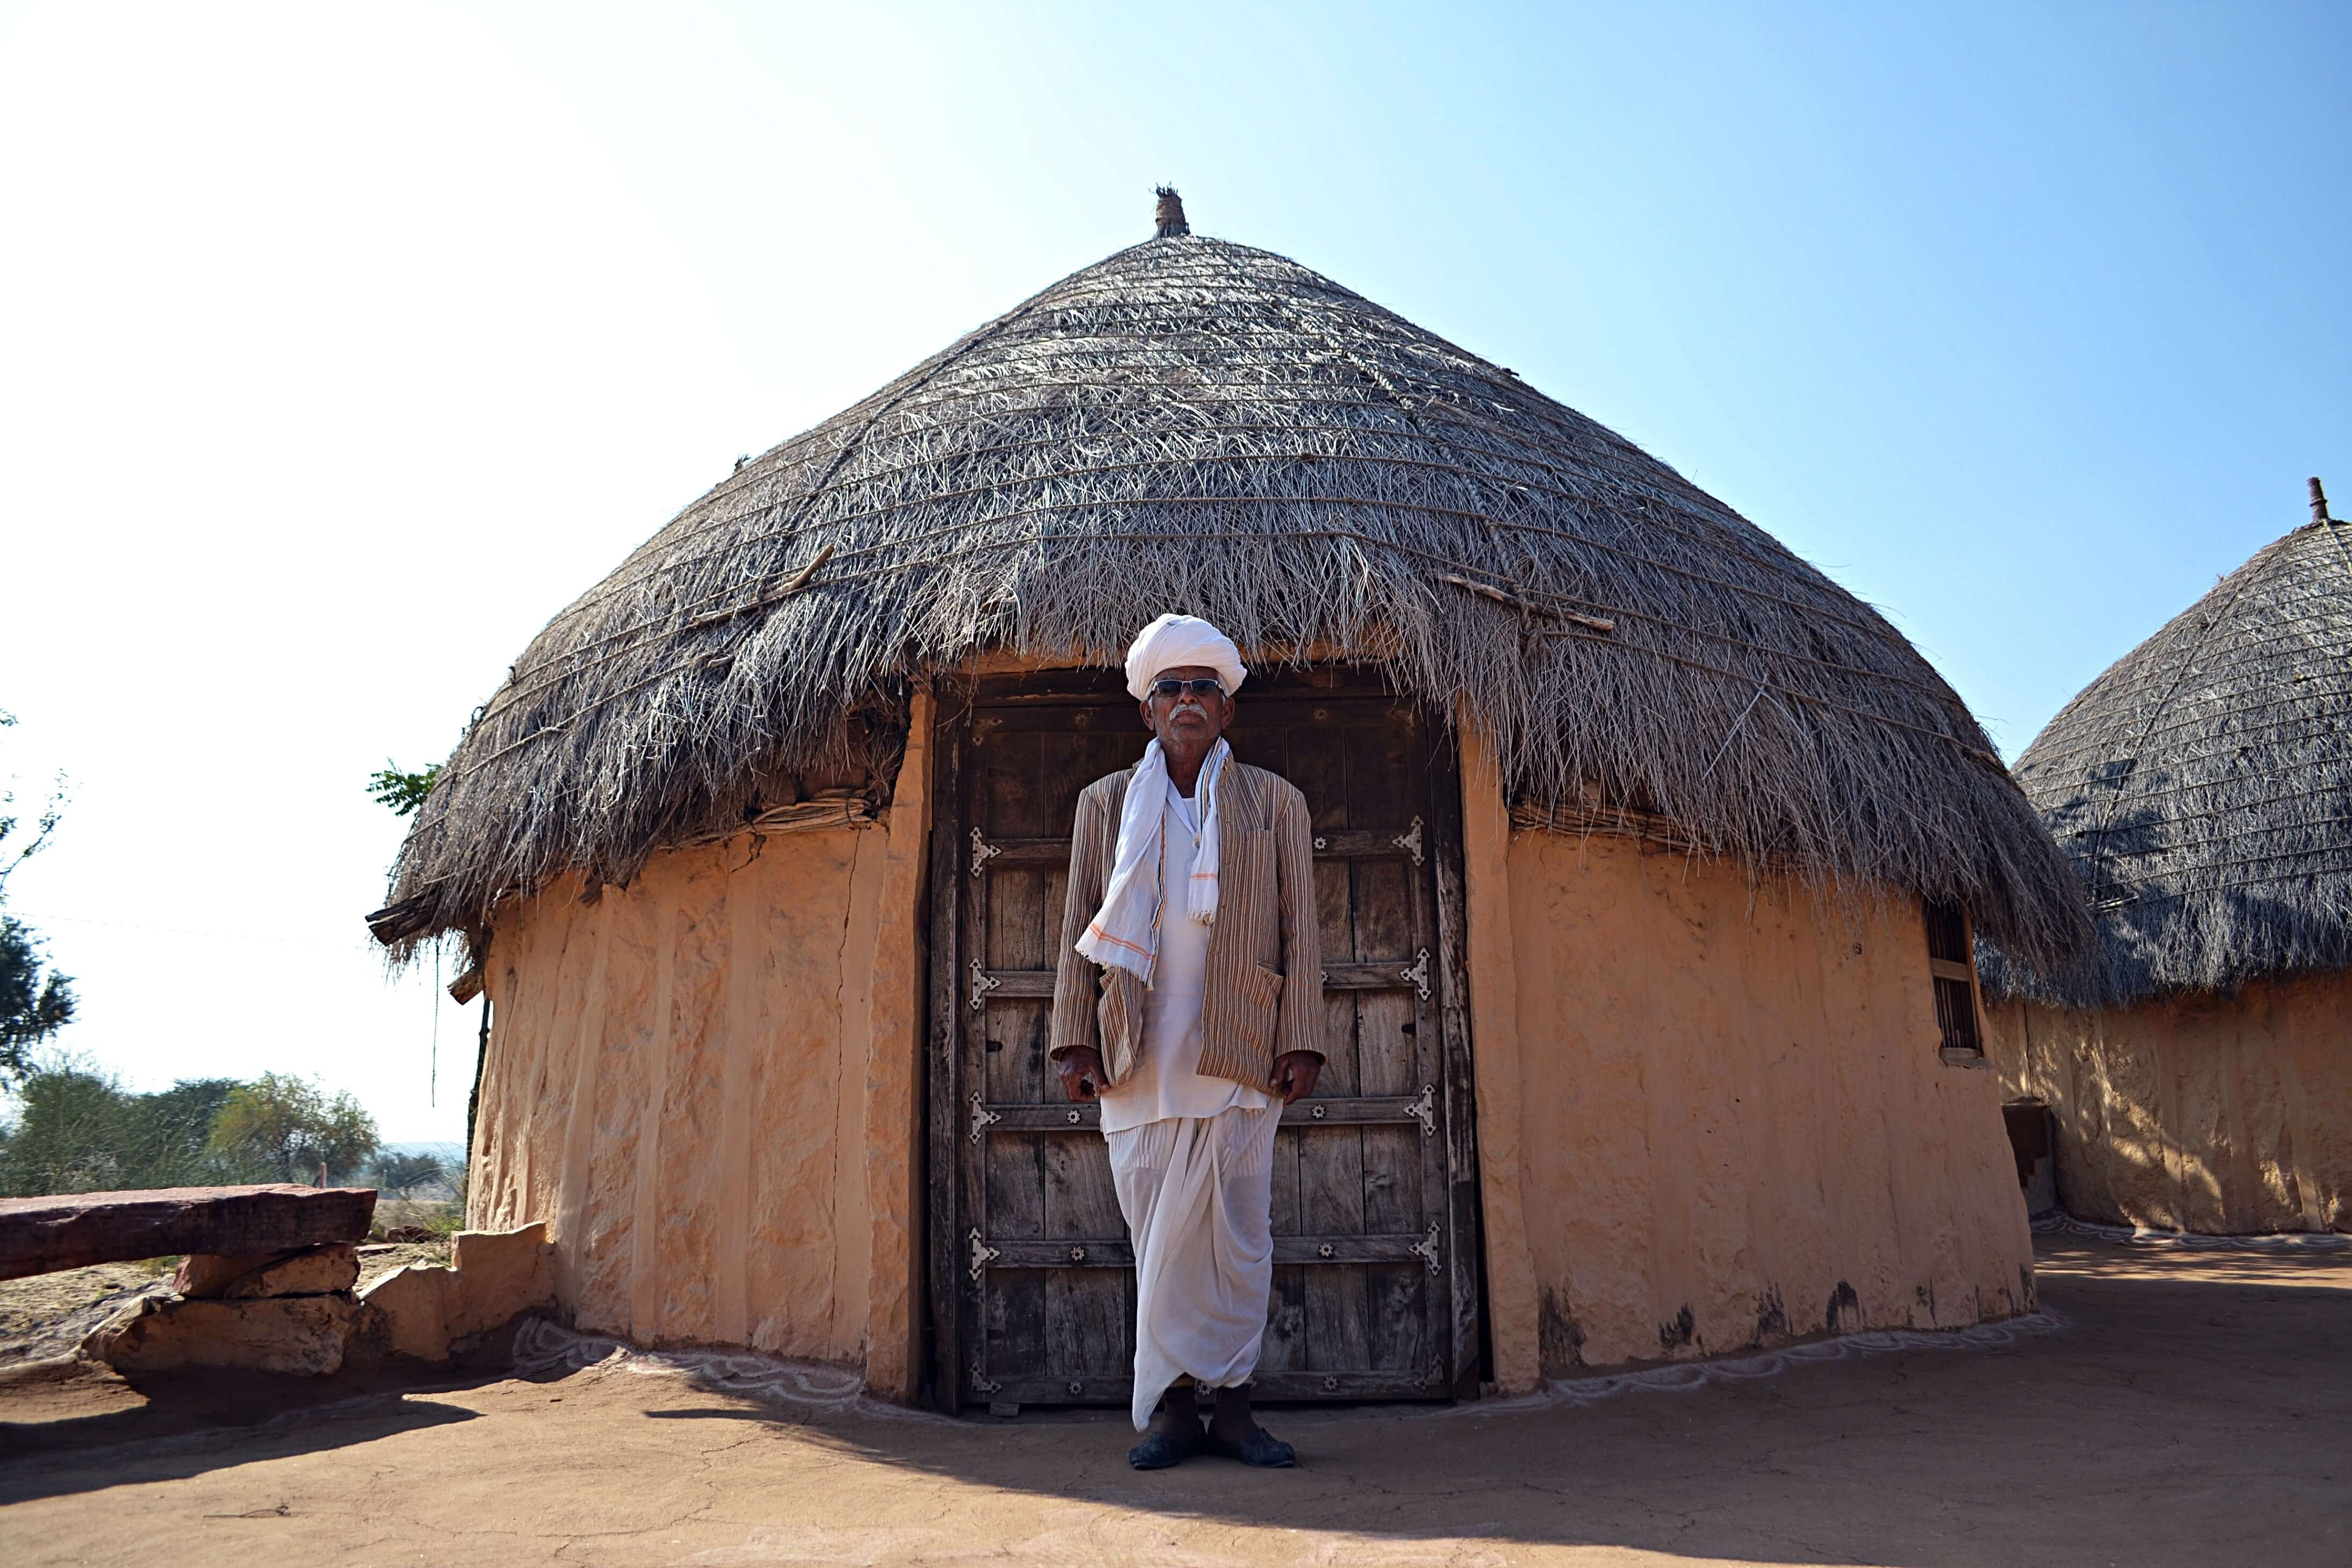 Babulal ji, standing in front of  a jhumpa hut. Babulal is one of the guides working for Hacra in an effort to improve the lives of the community via tourism.